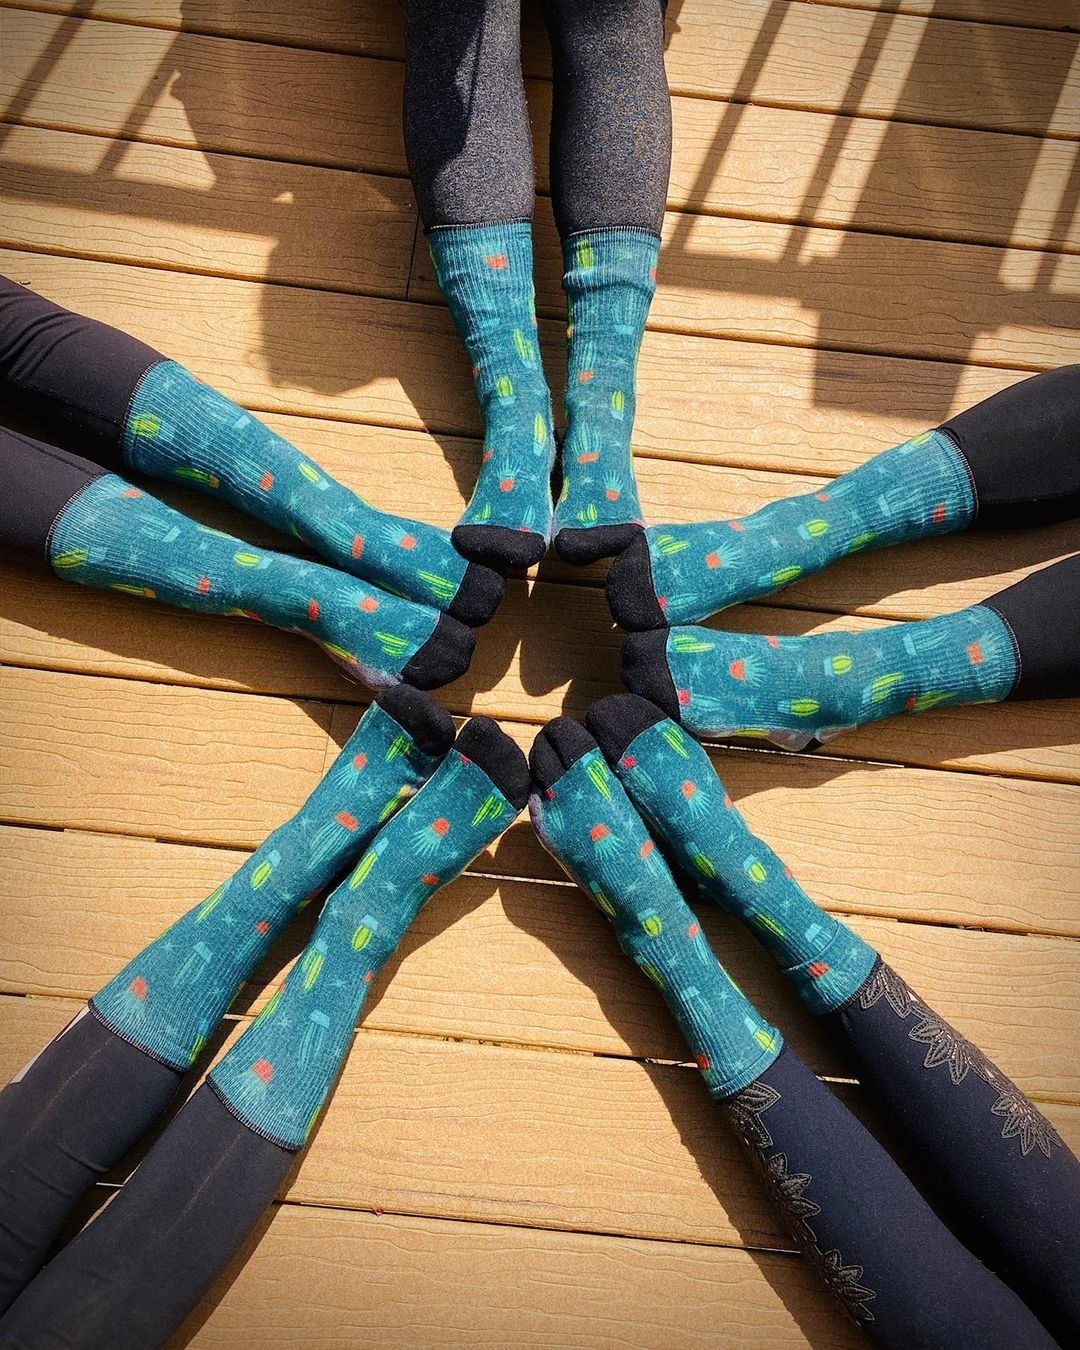 Several pairs of feet wearing the teal socks